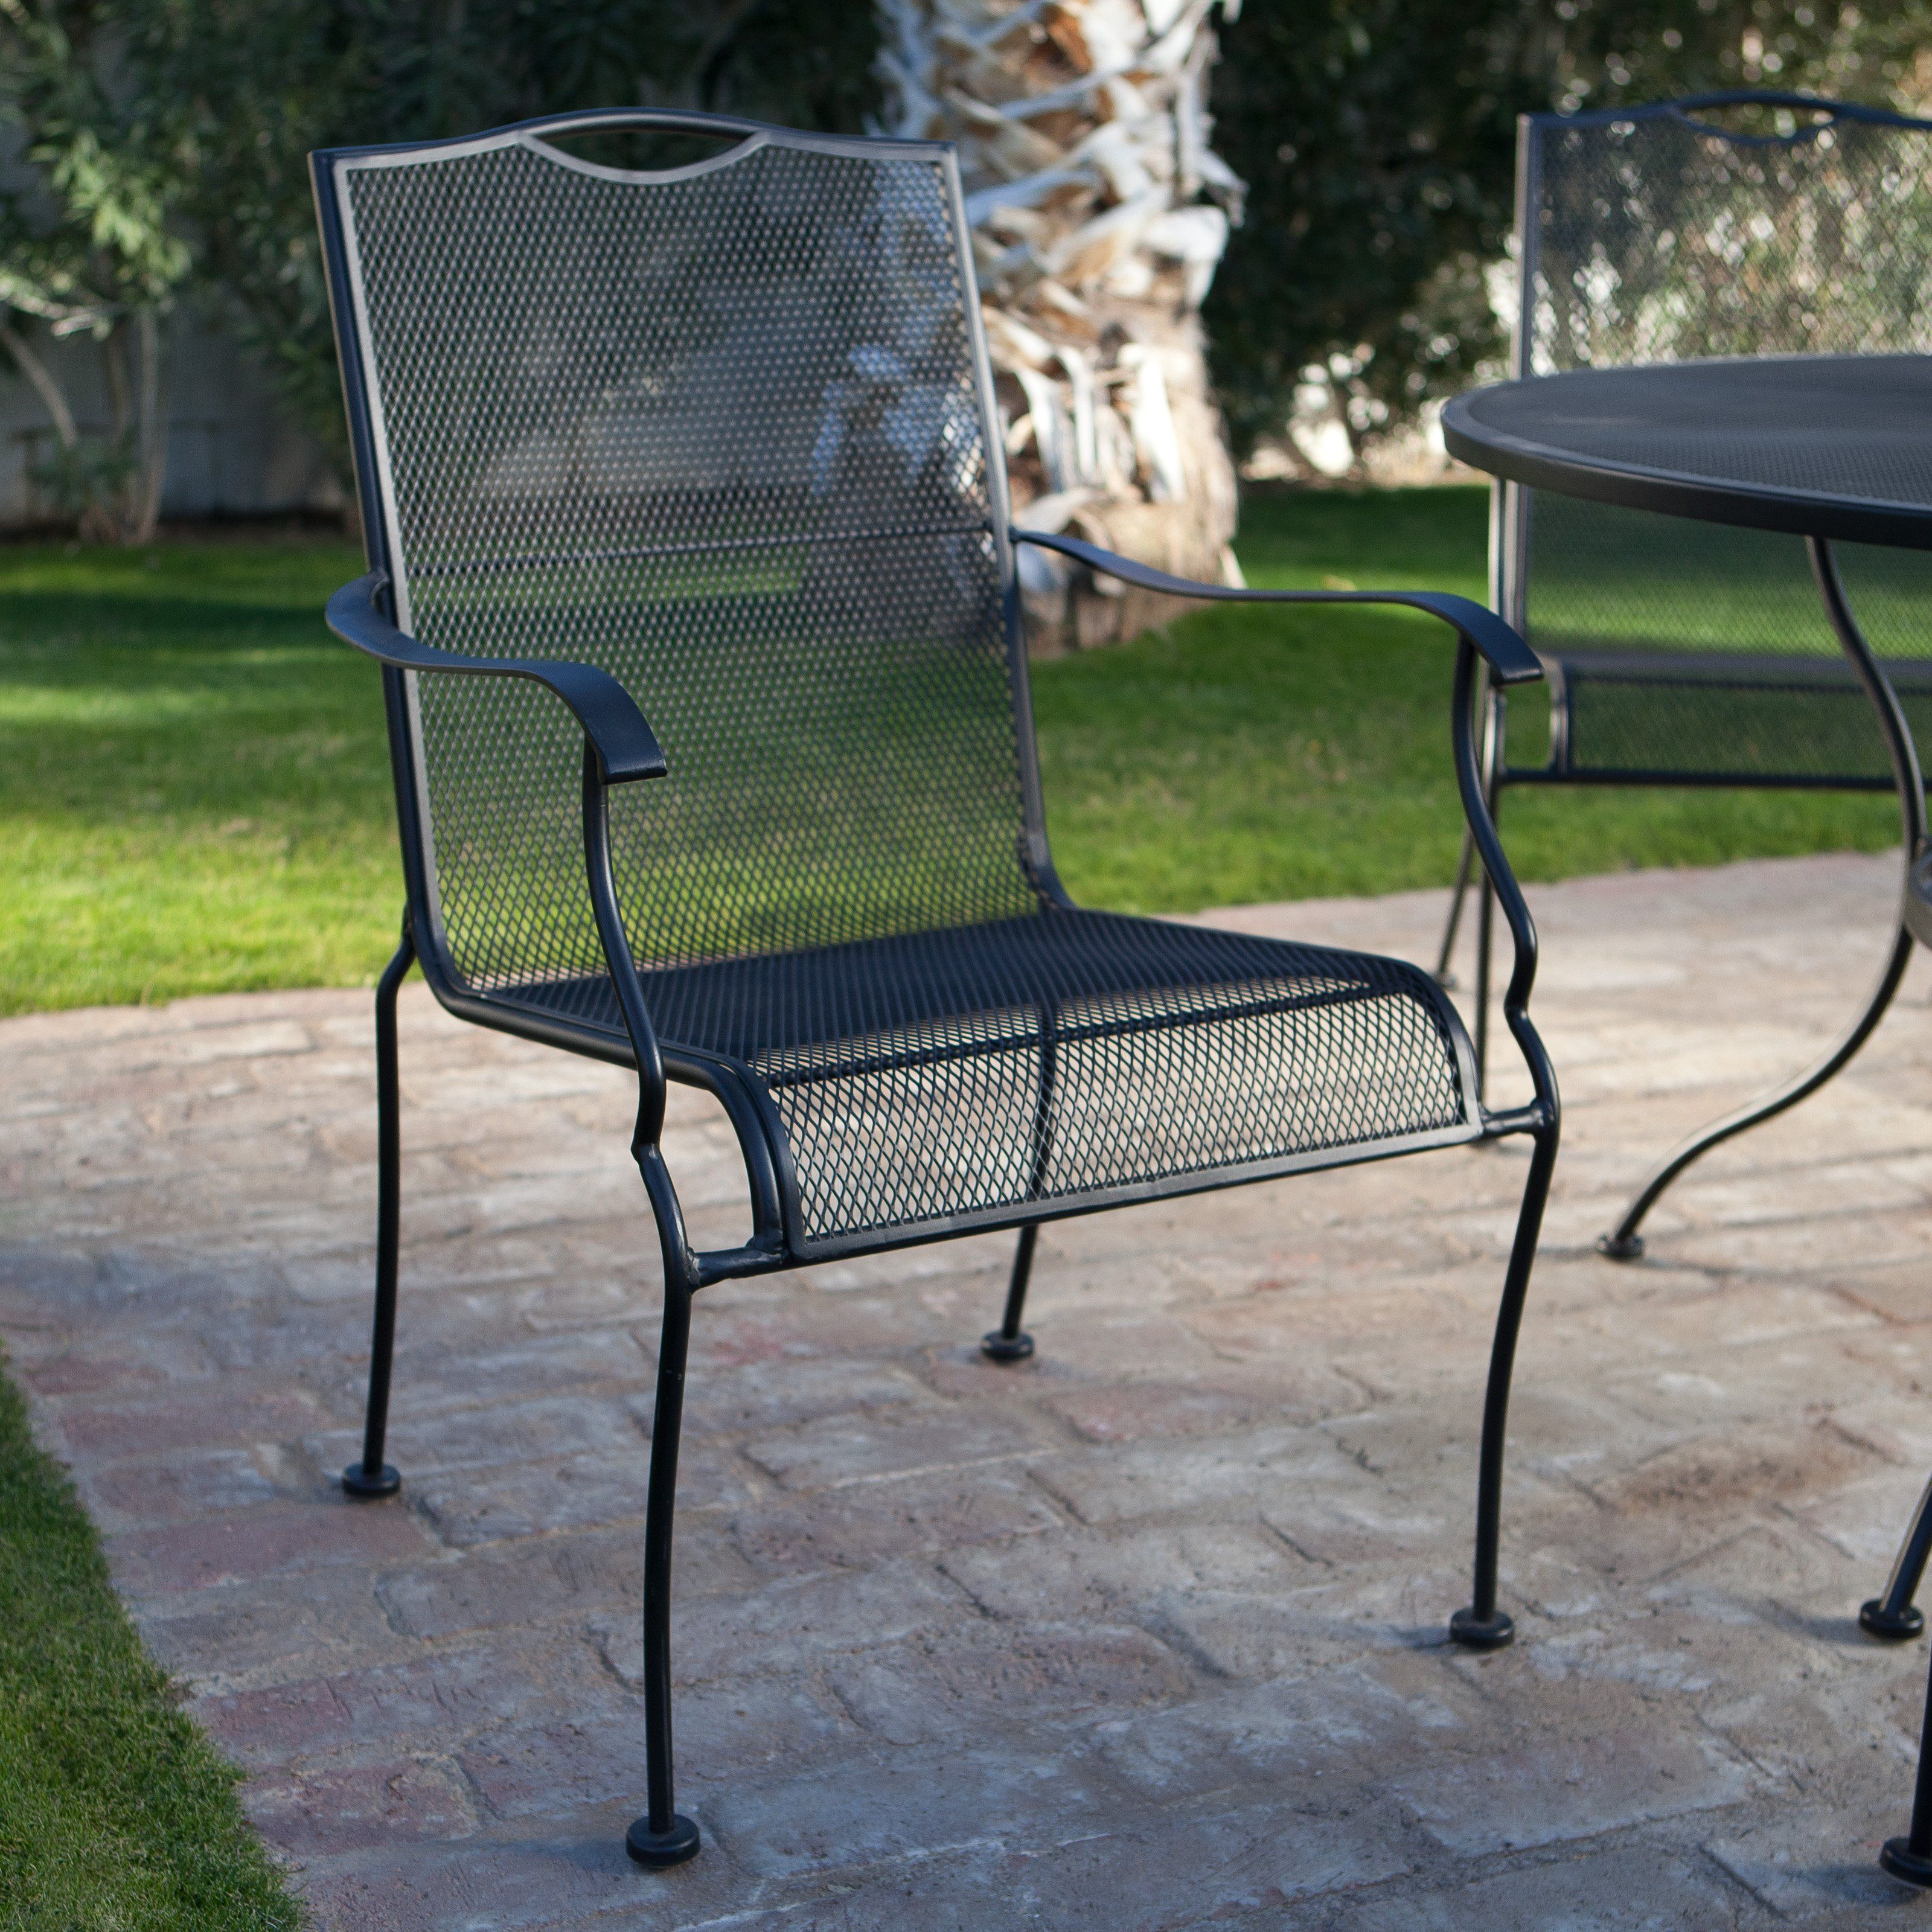 Belham Living Stanton Wrought Iron Dining Chair By Woodard Set Of 4 Textured Patio Furniture Dining Set Black Patio Furniture Wrought Iron Patio Furniture